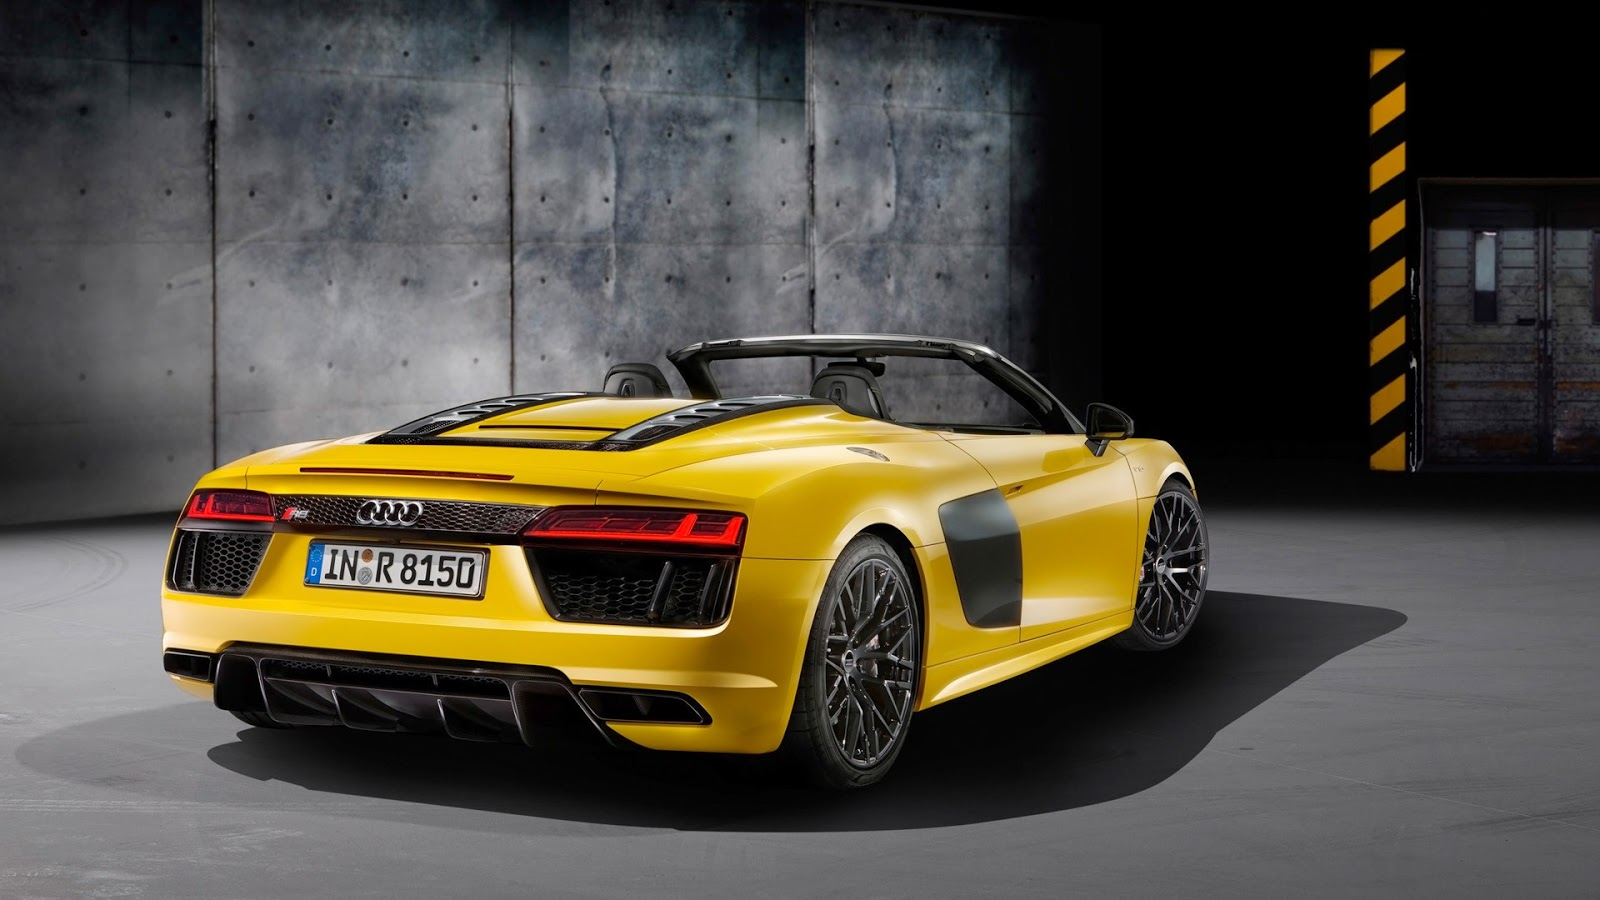 Audi Hd Wallpapers Backgrounds Your Desktop. Audi Cars Wallpapers